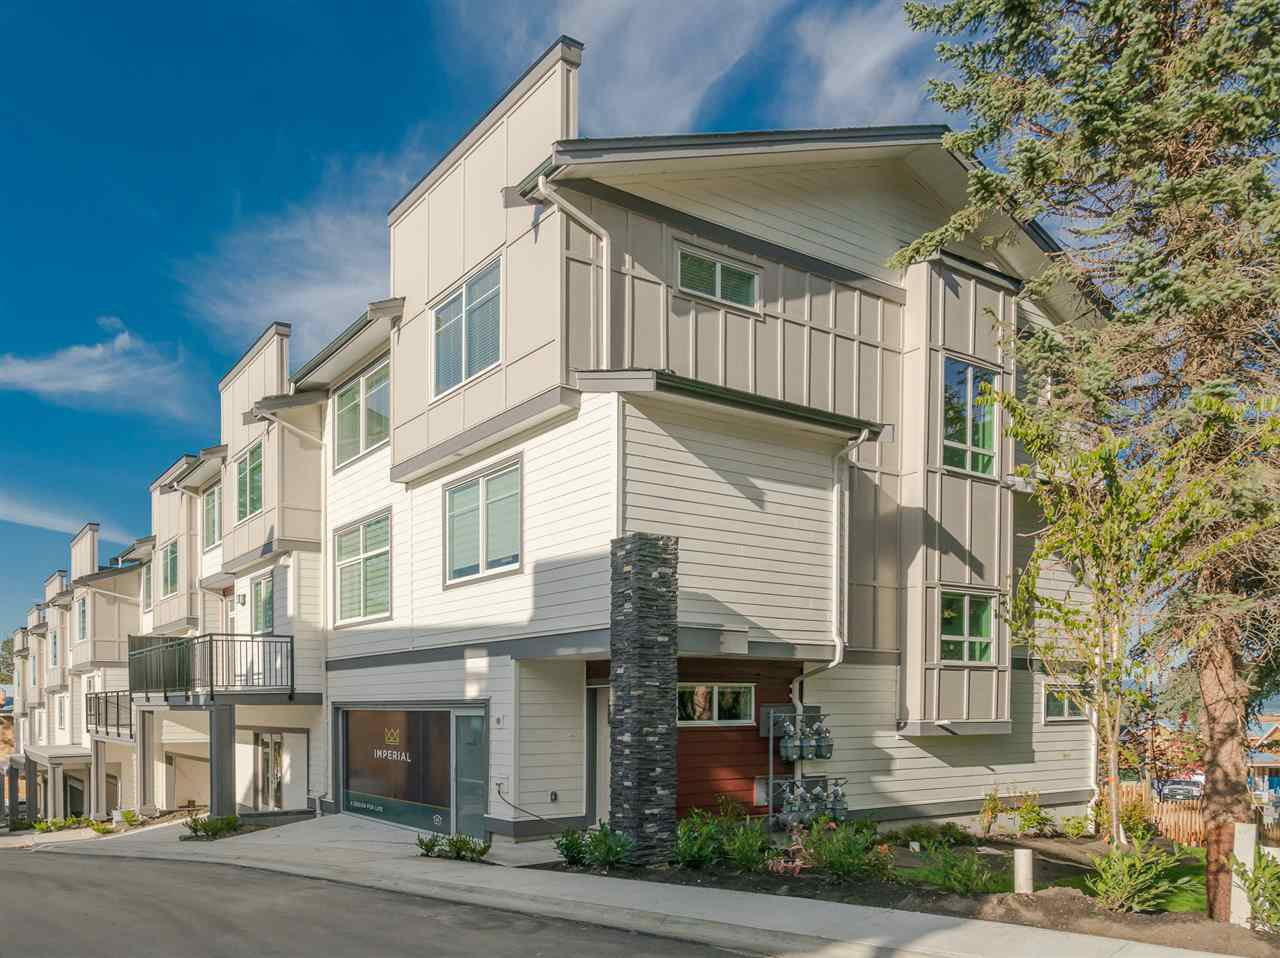 """Main Photo: 4 15633 MOUNTAIN VIEW Drive in Surrey: Grandview Surrey Townhouse for sale in """"Imperial"""" (South Surrey White Rock)  : MLS®# R2212540"""